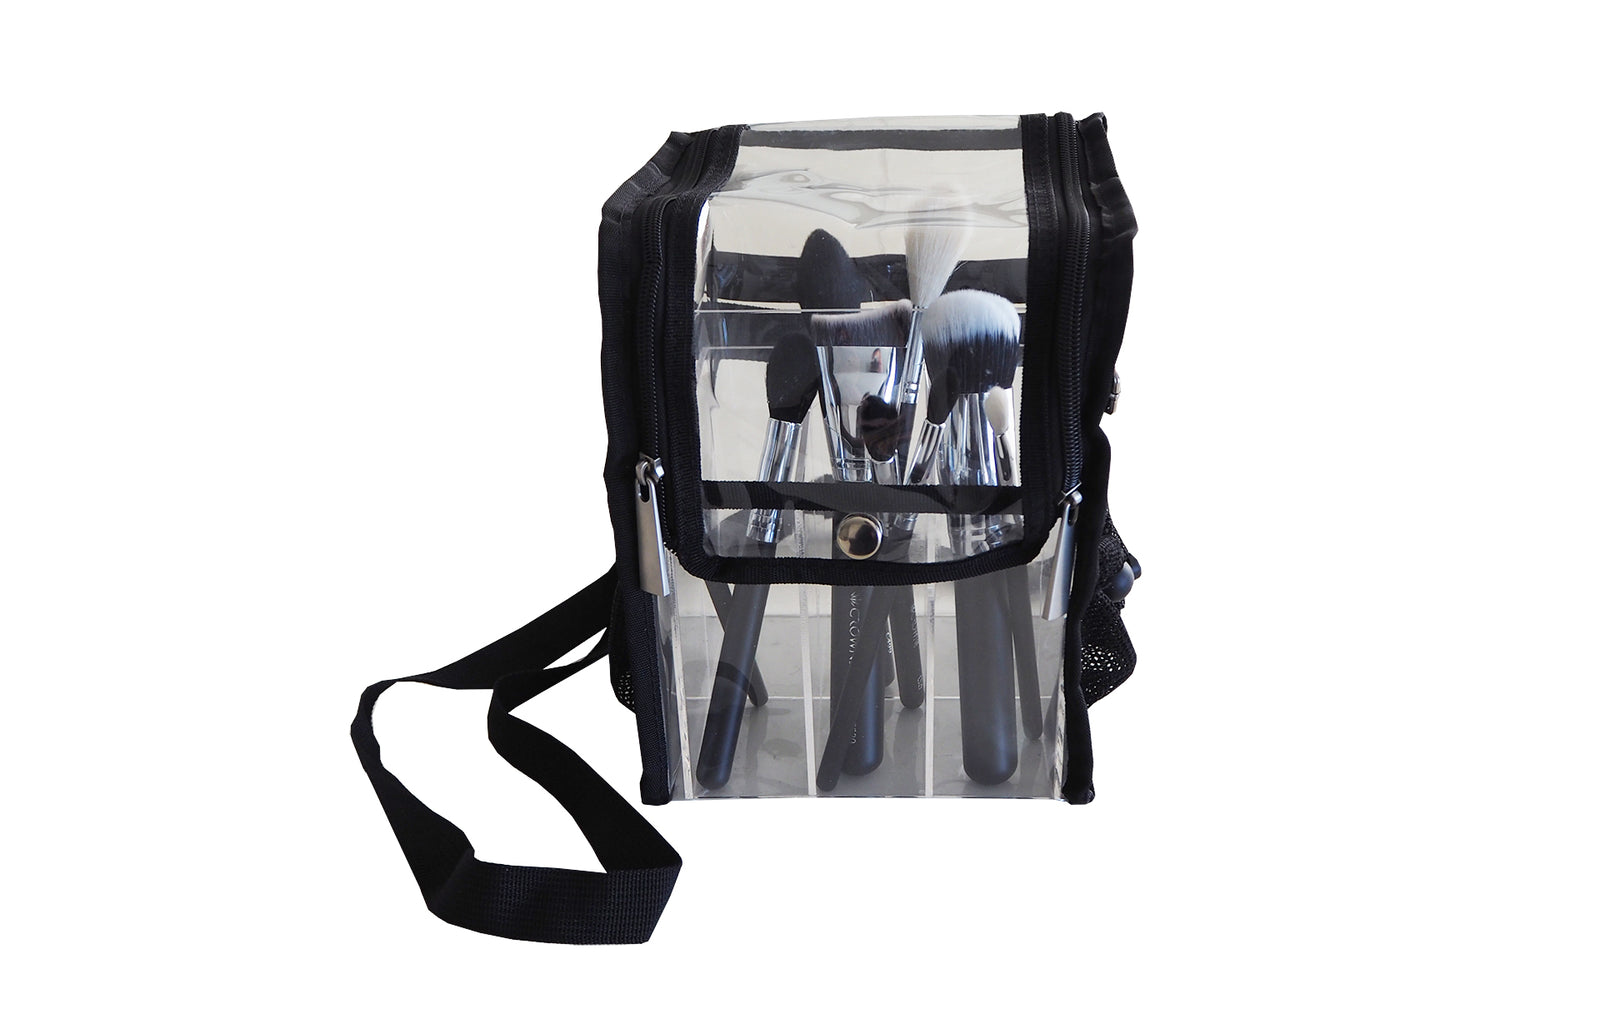 Clear Brush Organiser Bag with straps - Crownbrush